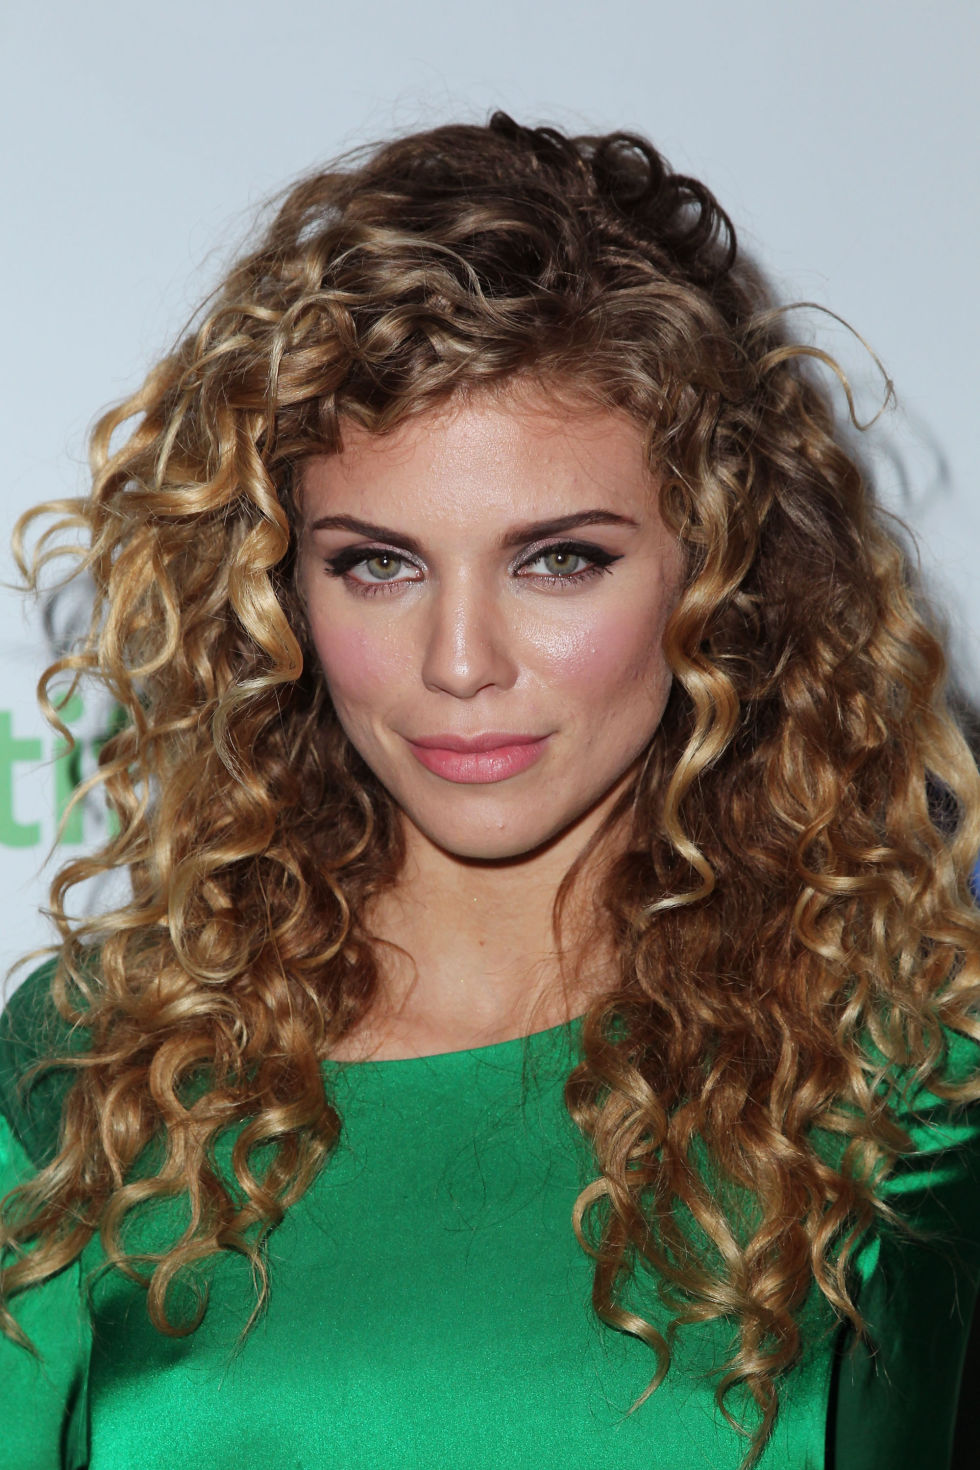 Astounding 30 Best Curly Hairstyles Of 2017 Cute Hairstyles For Curly Hair Hairstyle Inspiration Daily Dogsangcom